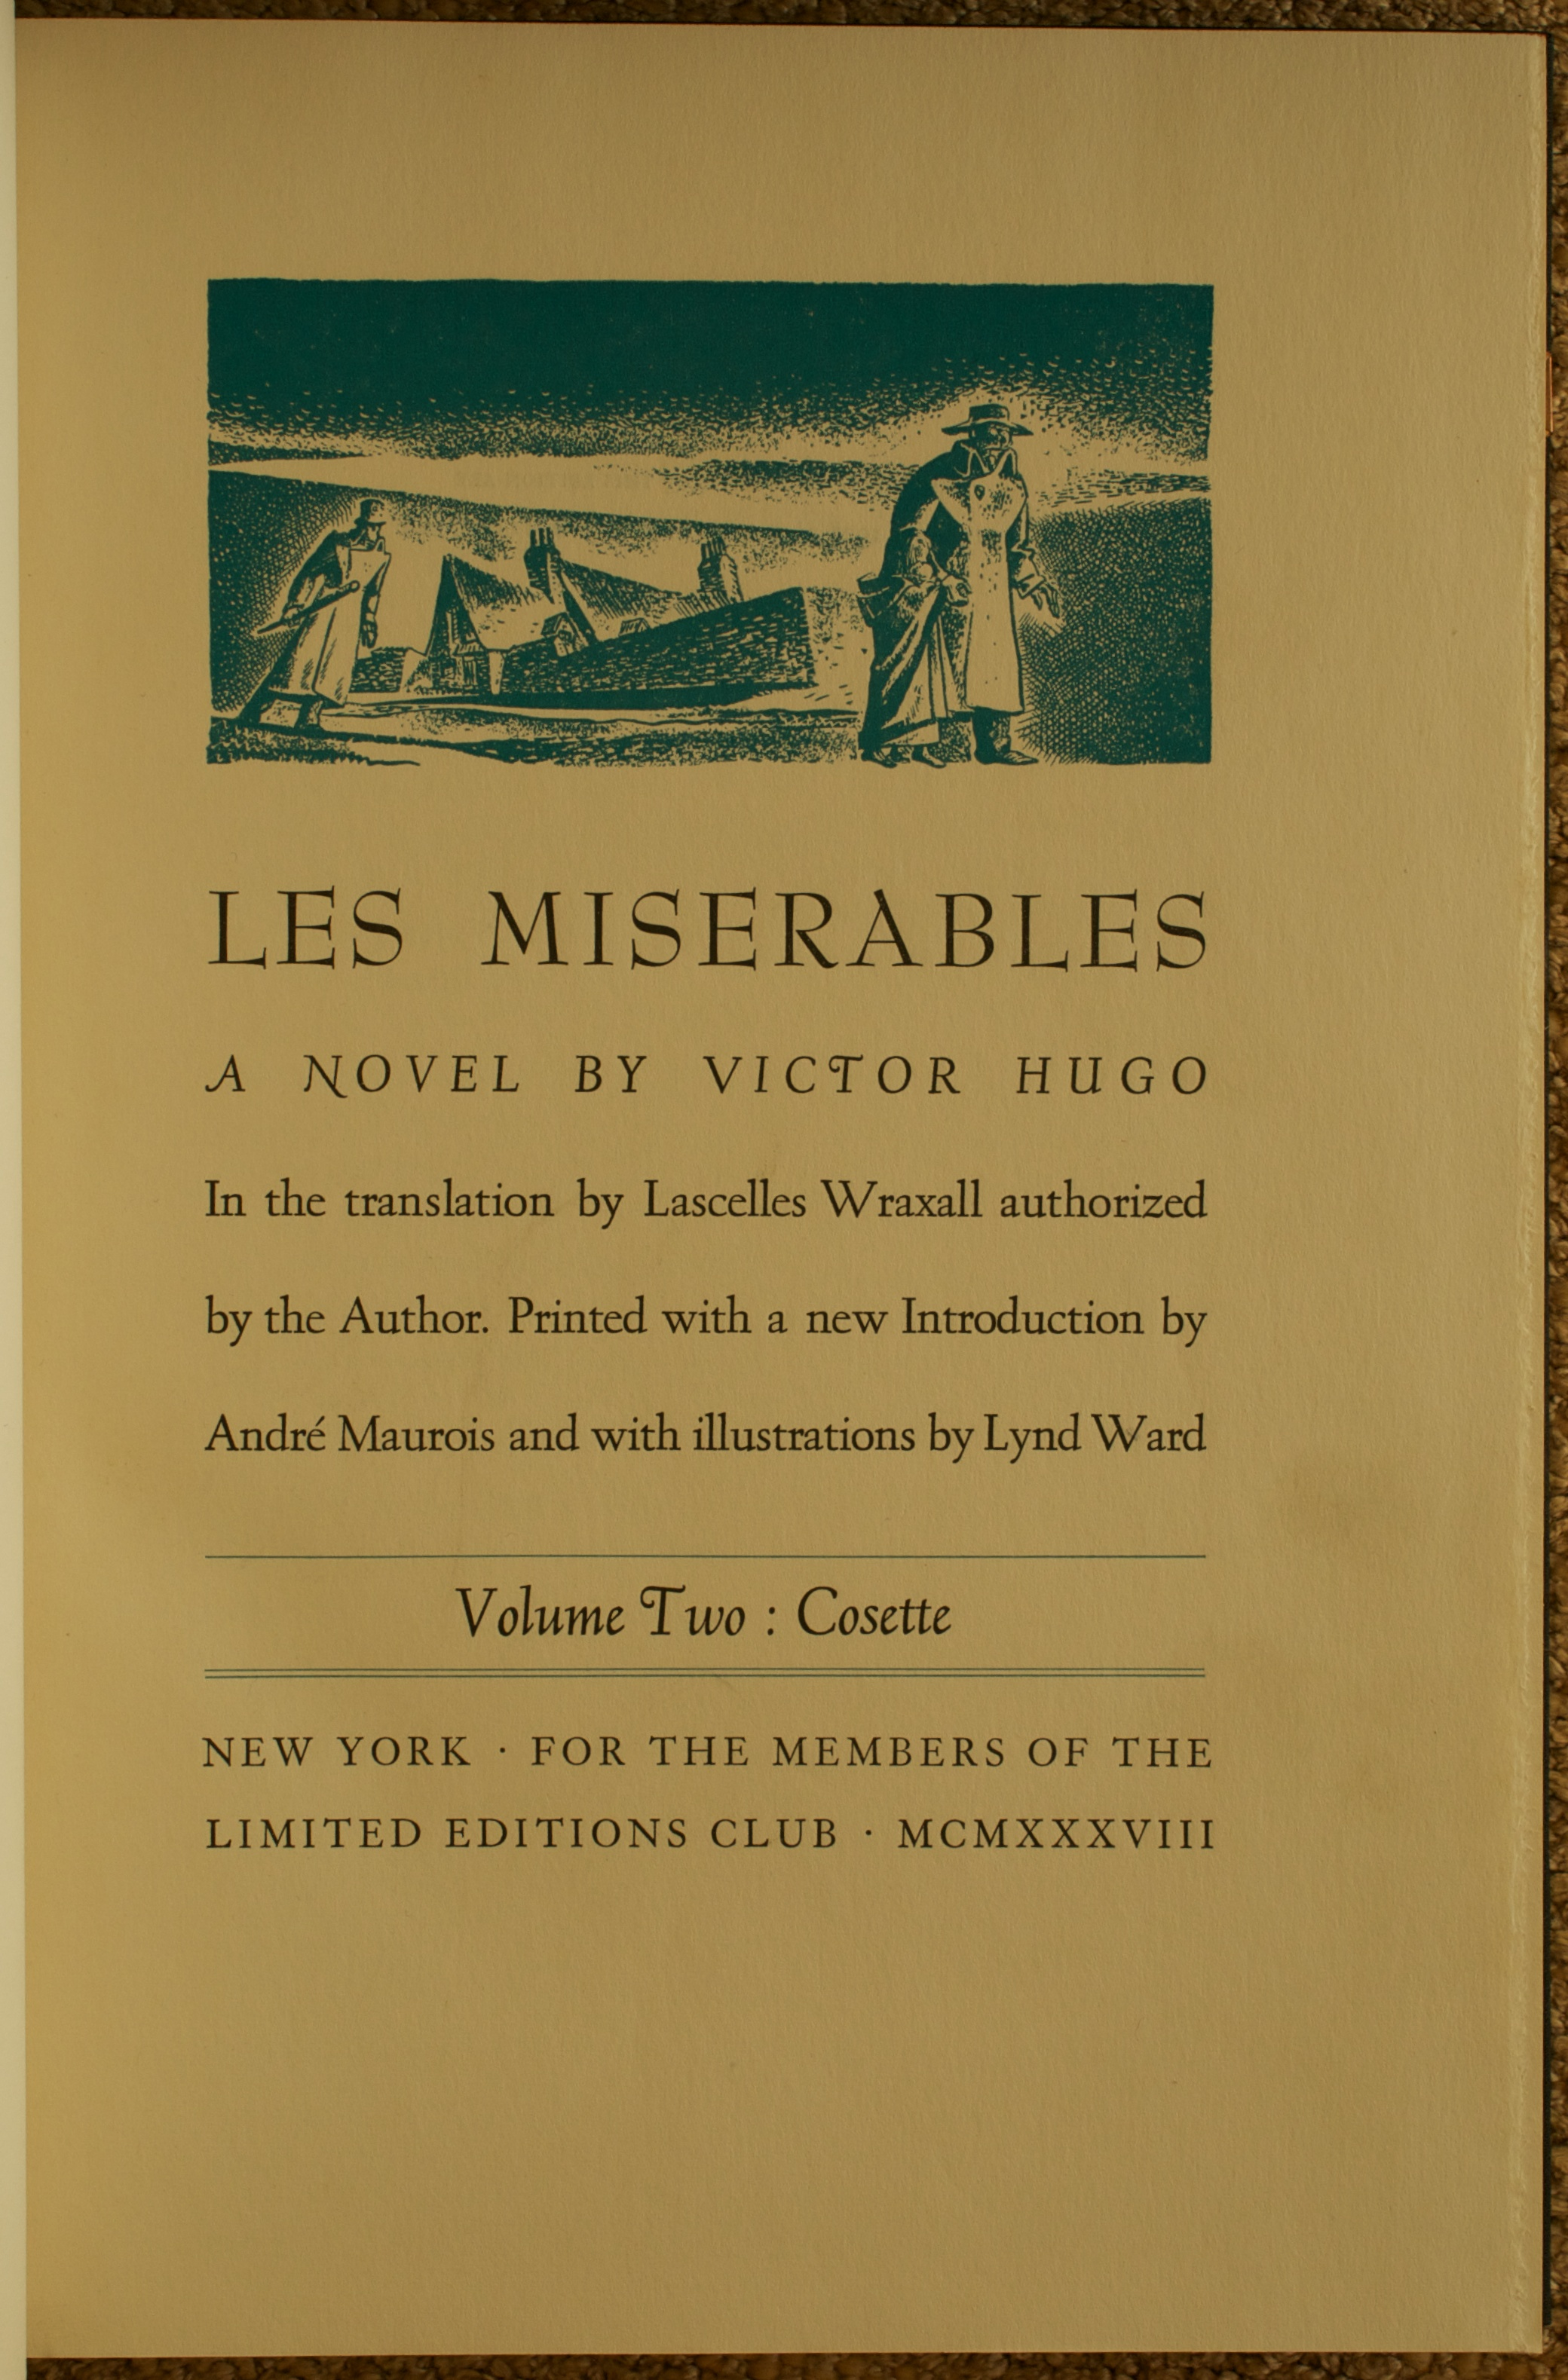 an analysis of the les miserables by victor hugo The enduring relevance of victor hugo by megan  today is sunday and i've been reading hugo's account of waterloo in 'les miserables' and preparing my.